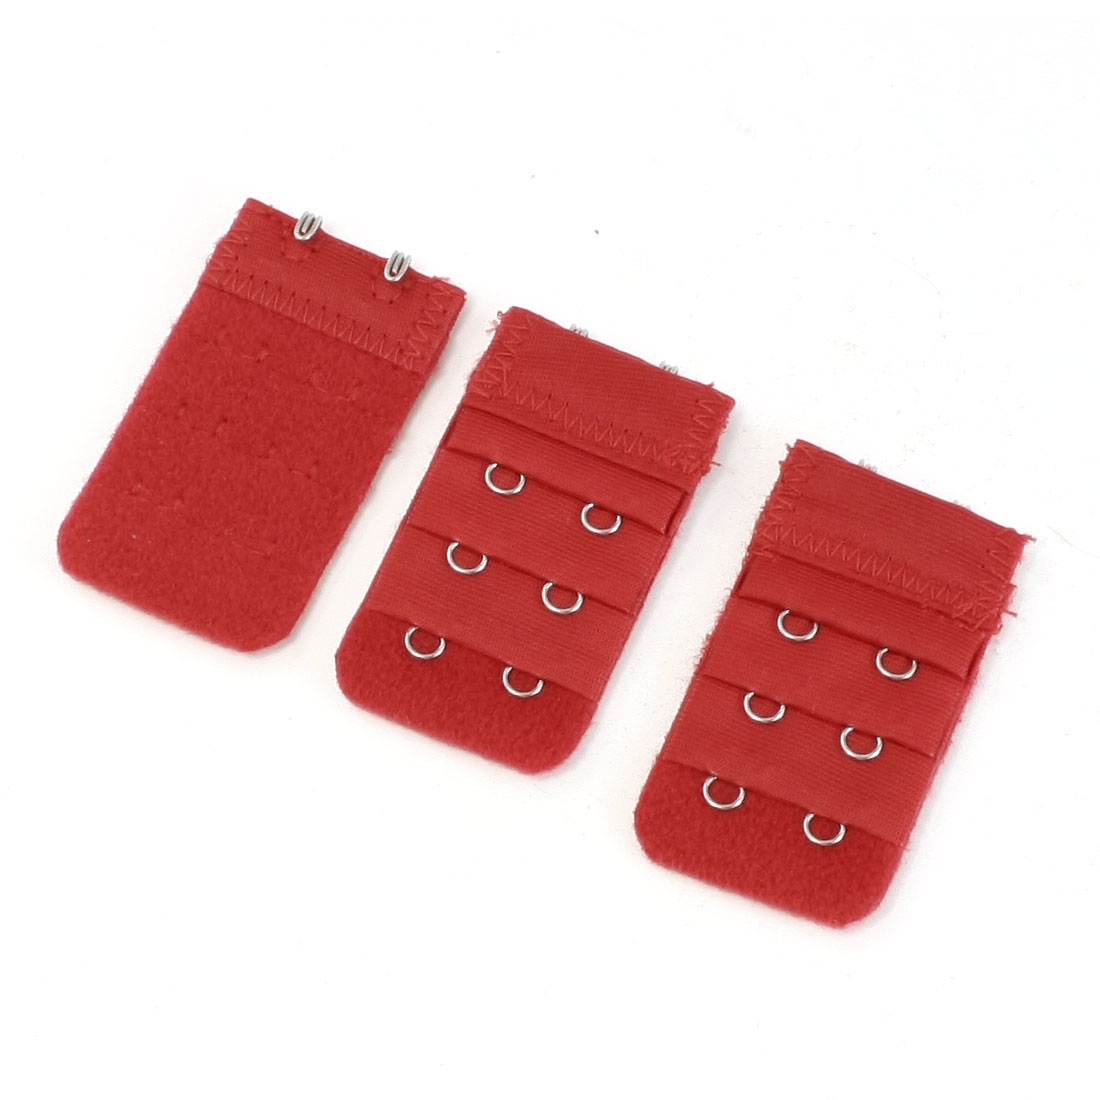 3pcs Lady 3 Row 2 Hook Adjustable Underwear Bra Strap Extension Buckle Hooks Red